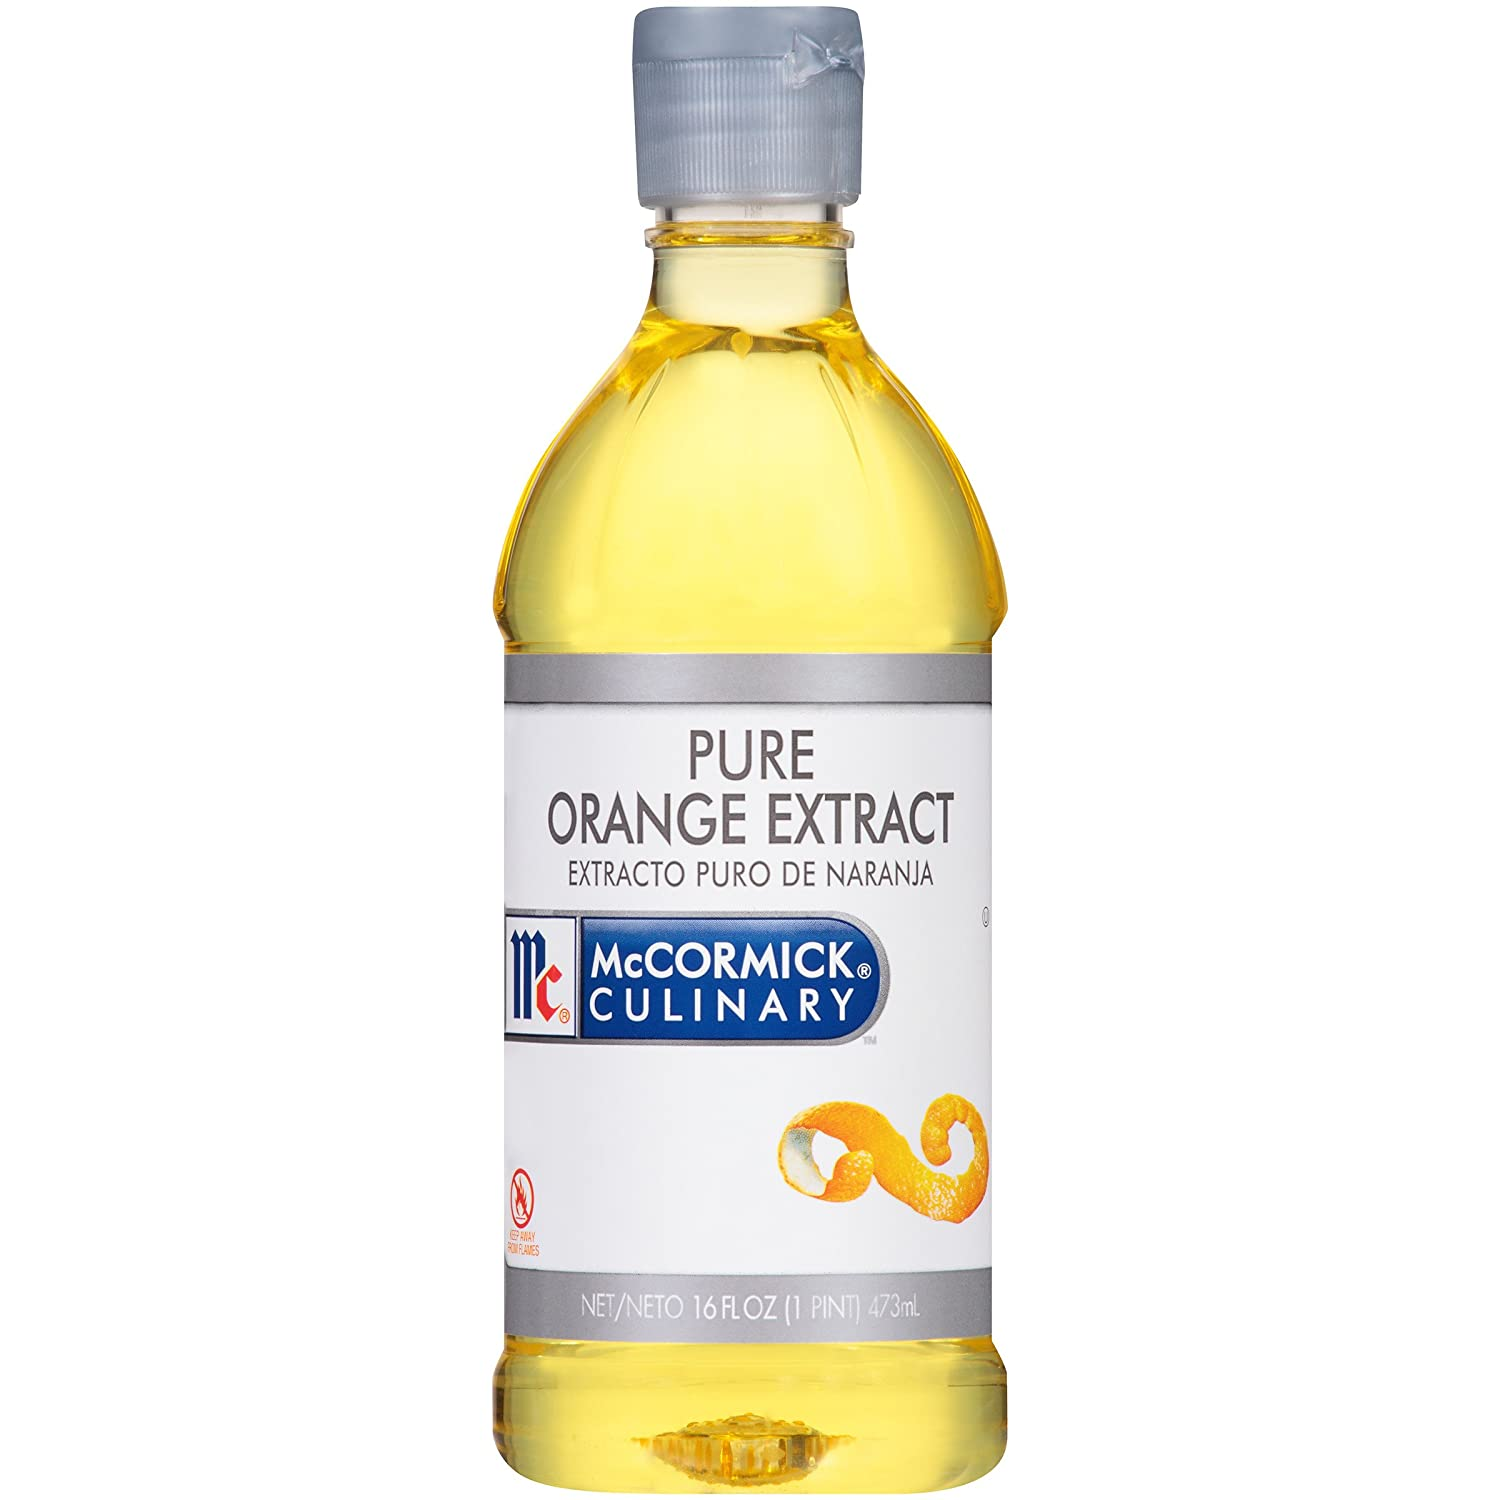 McCormick Culinary Pure Orange Extract, 16 fl oz